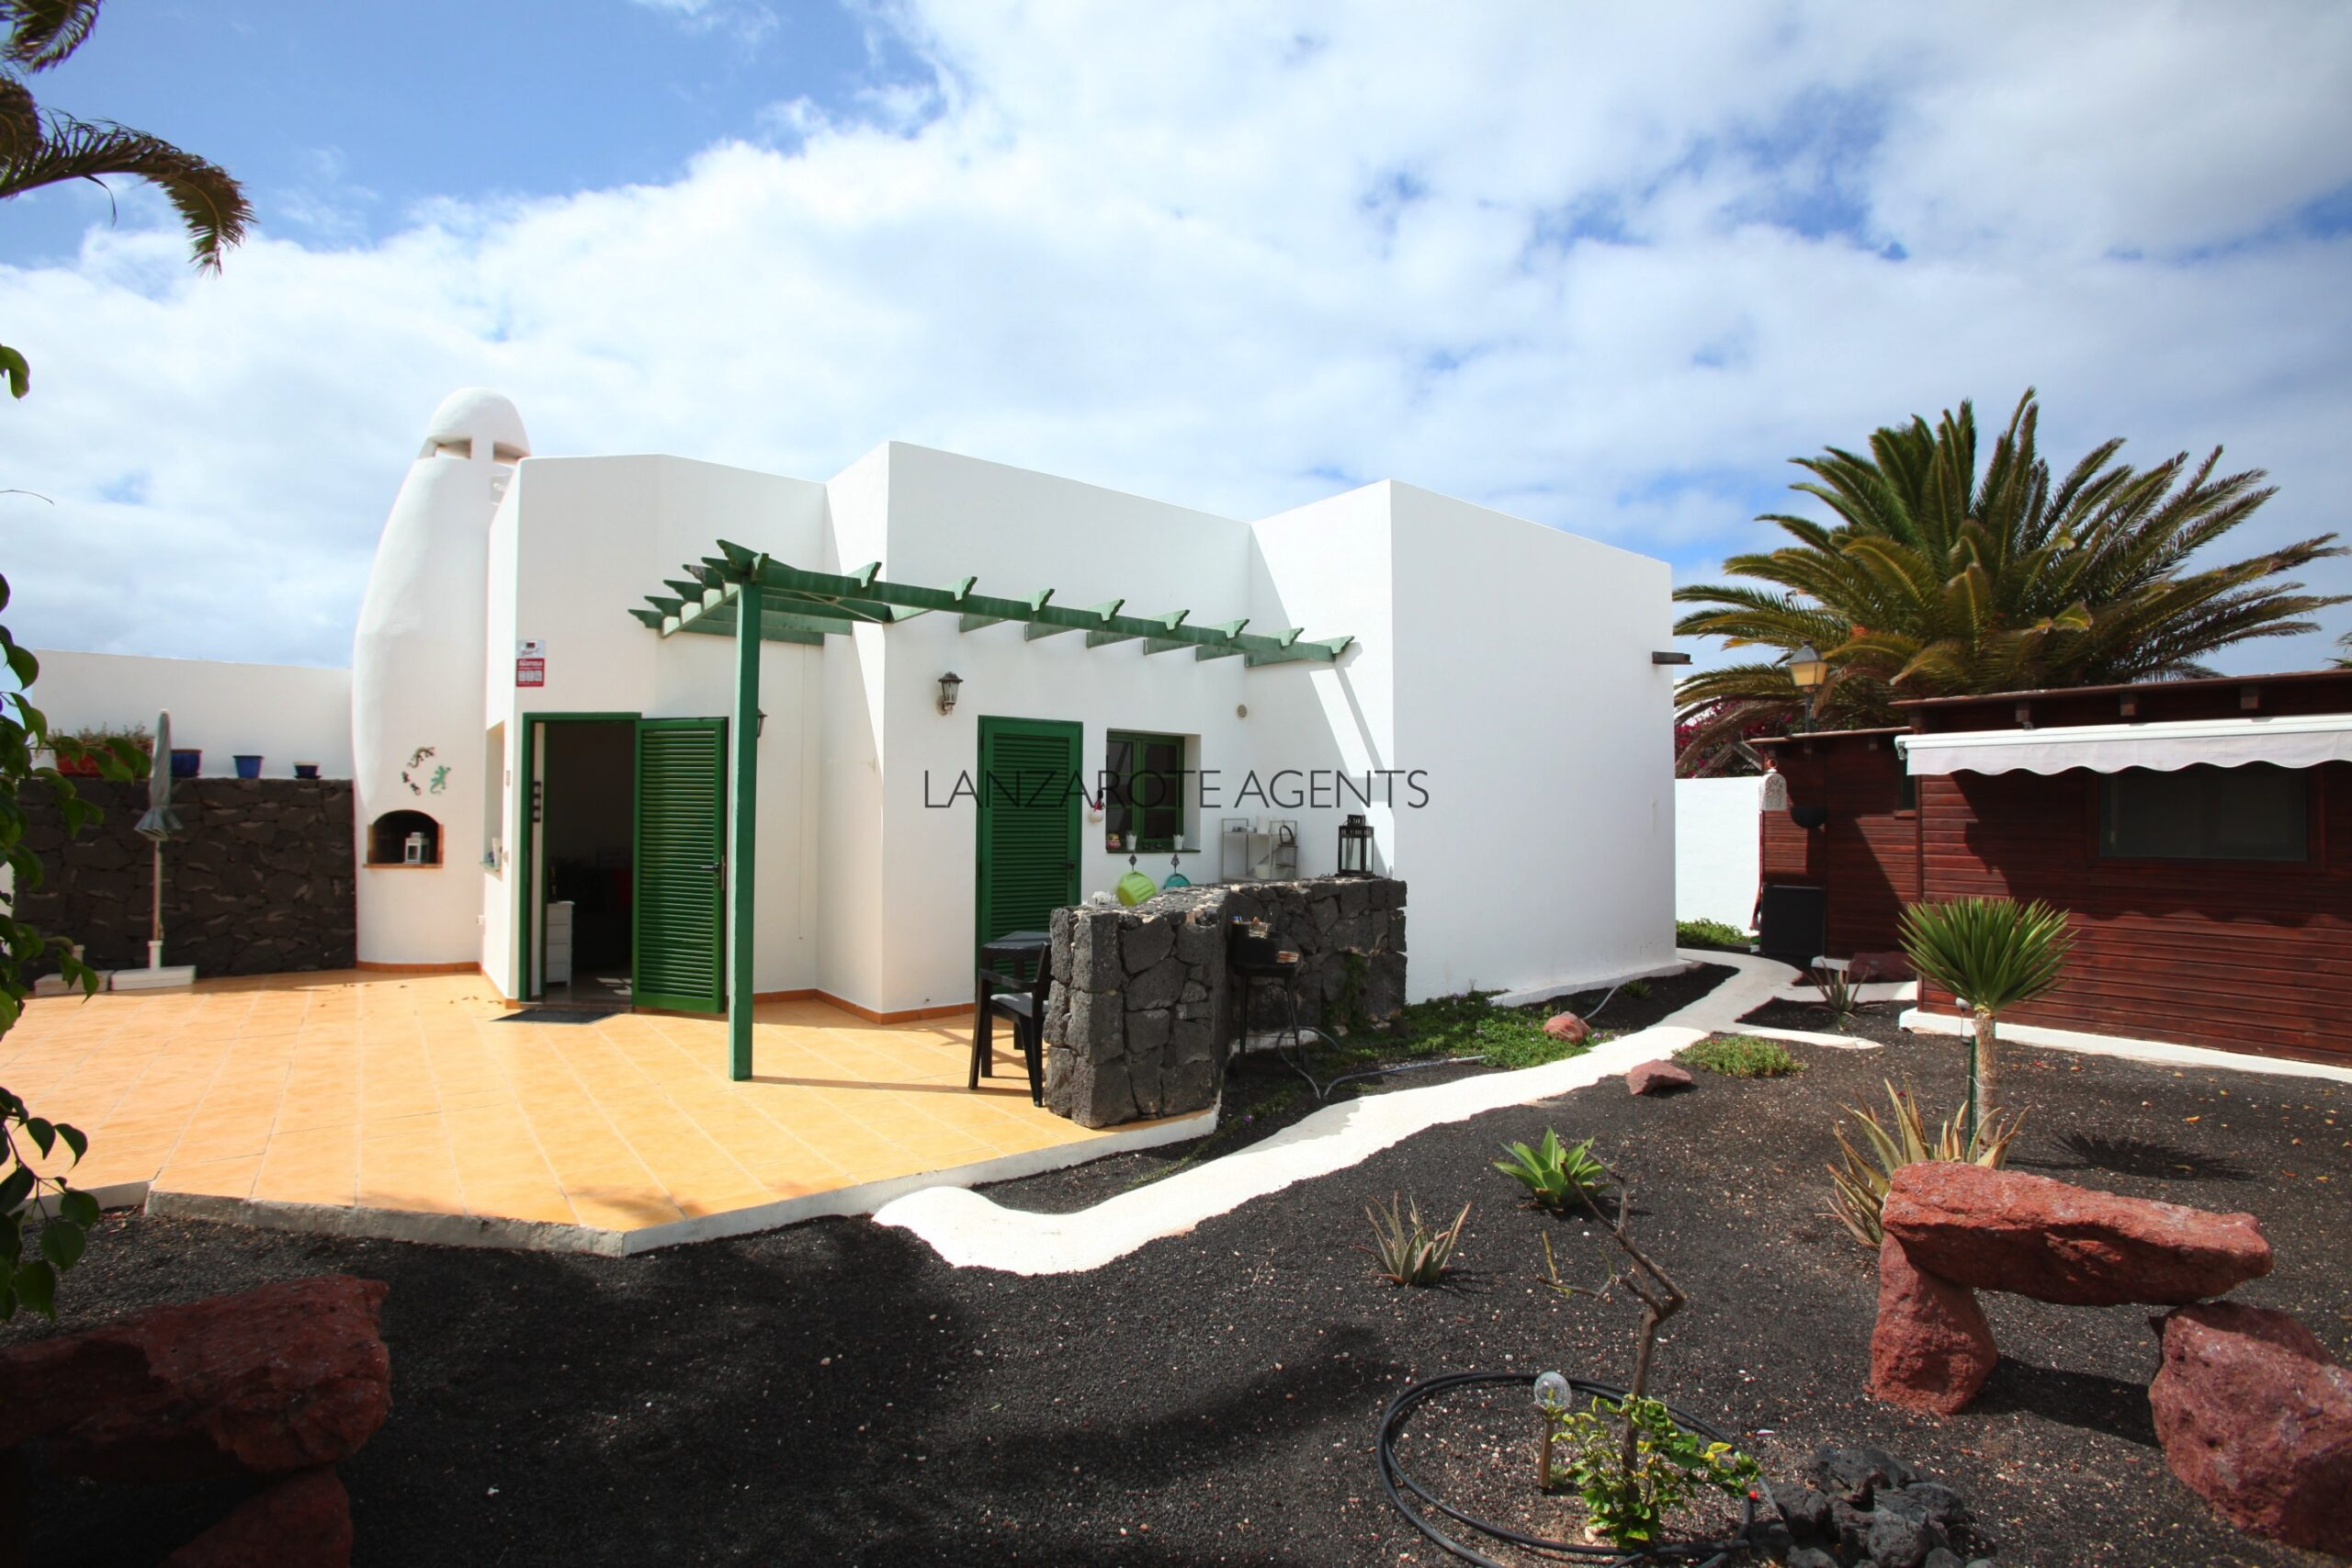 Semi Detached Bungalow in Playa Blanca, with a Self Contained Apartment and Mature Gardens in a Complex with Communal Pool and Tennis Court